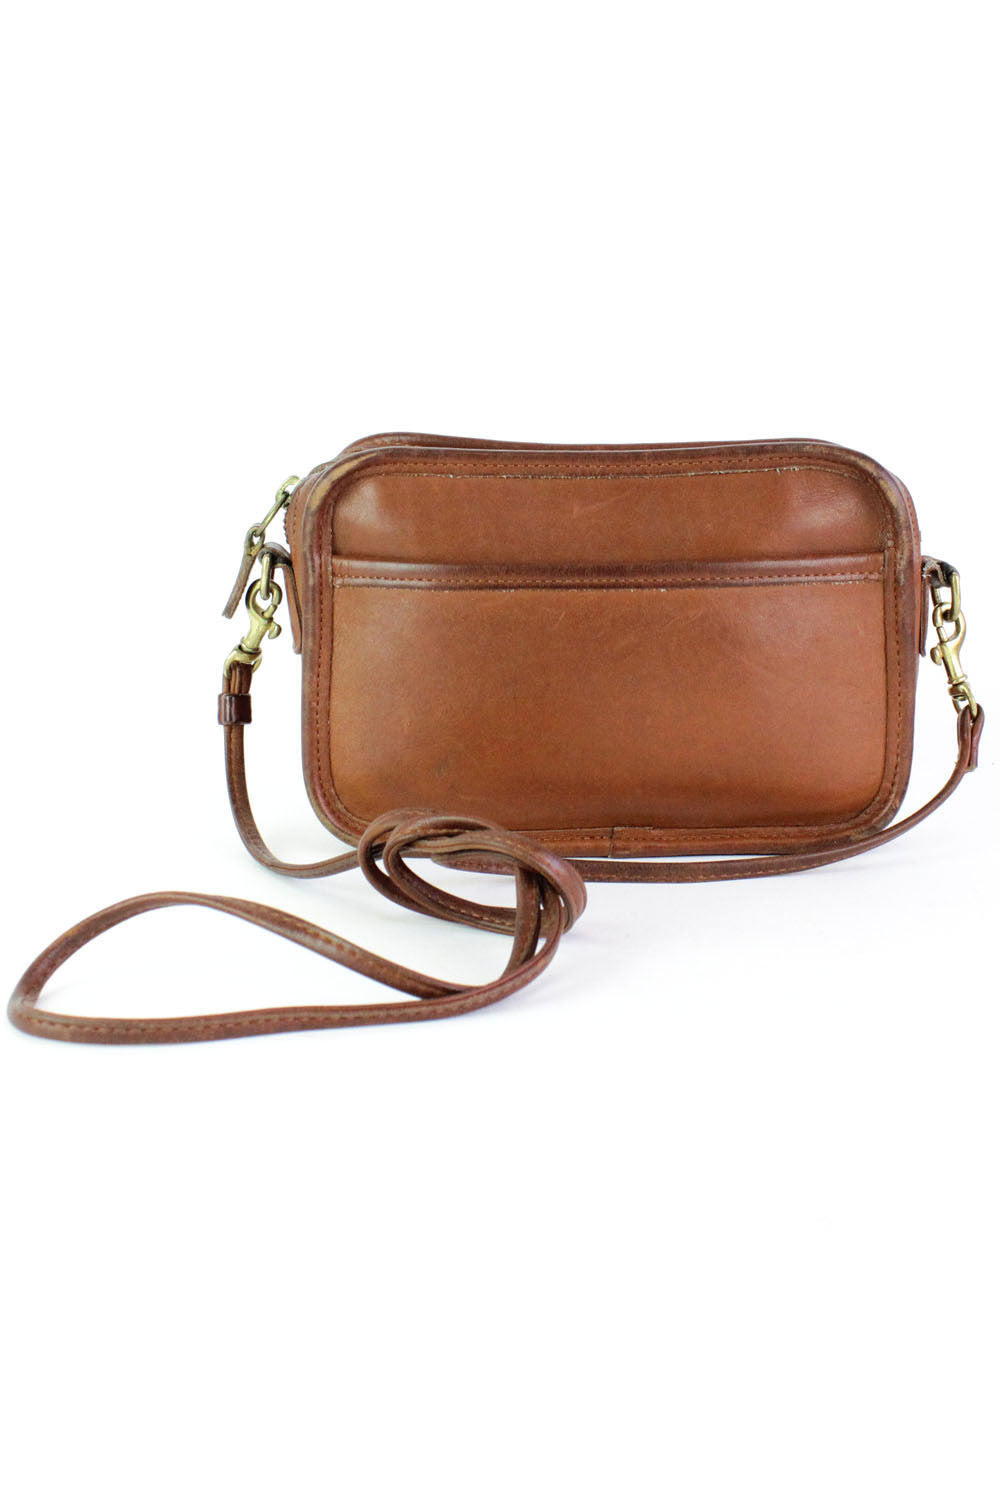 Coach chestnut crossbody bag